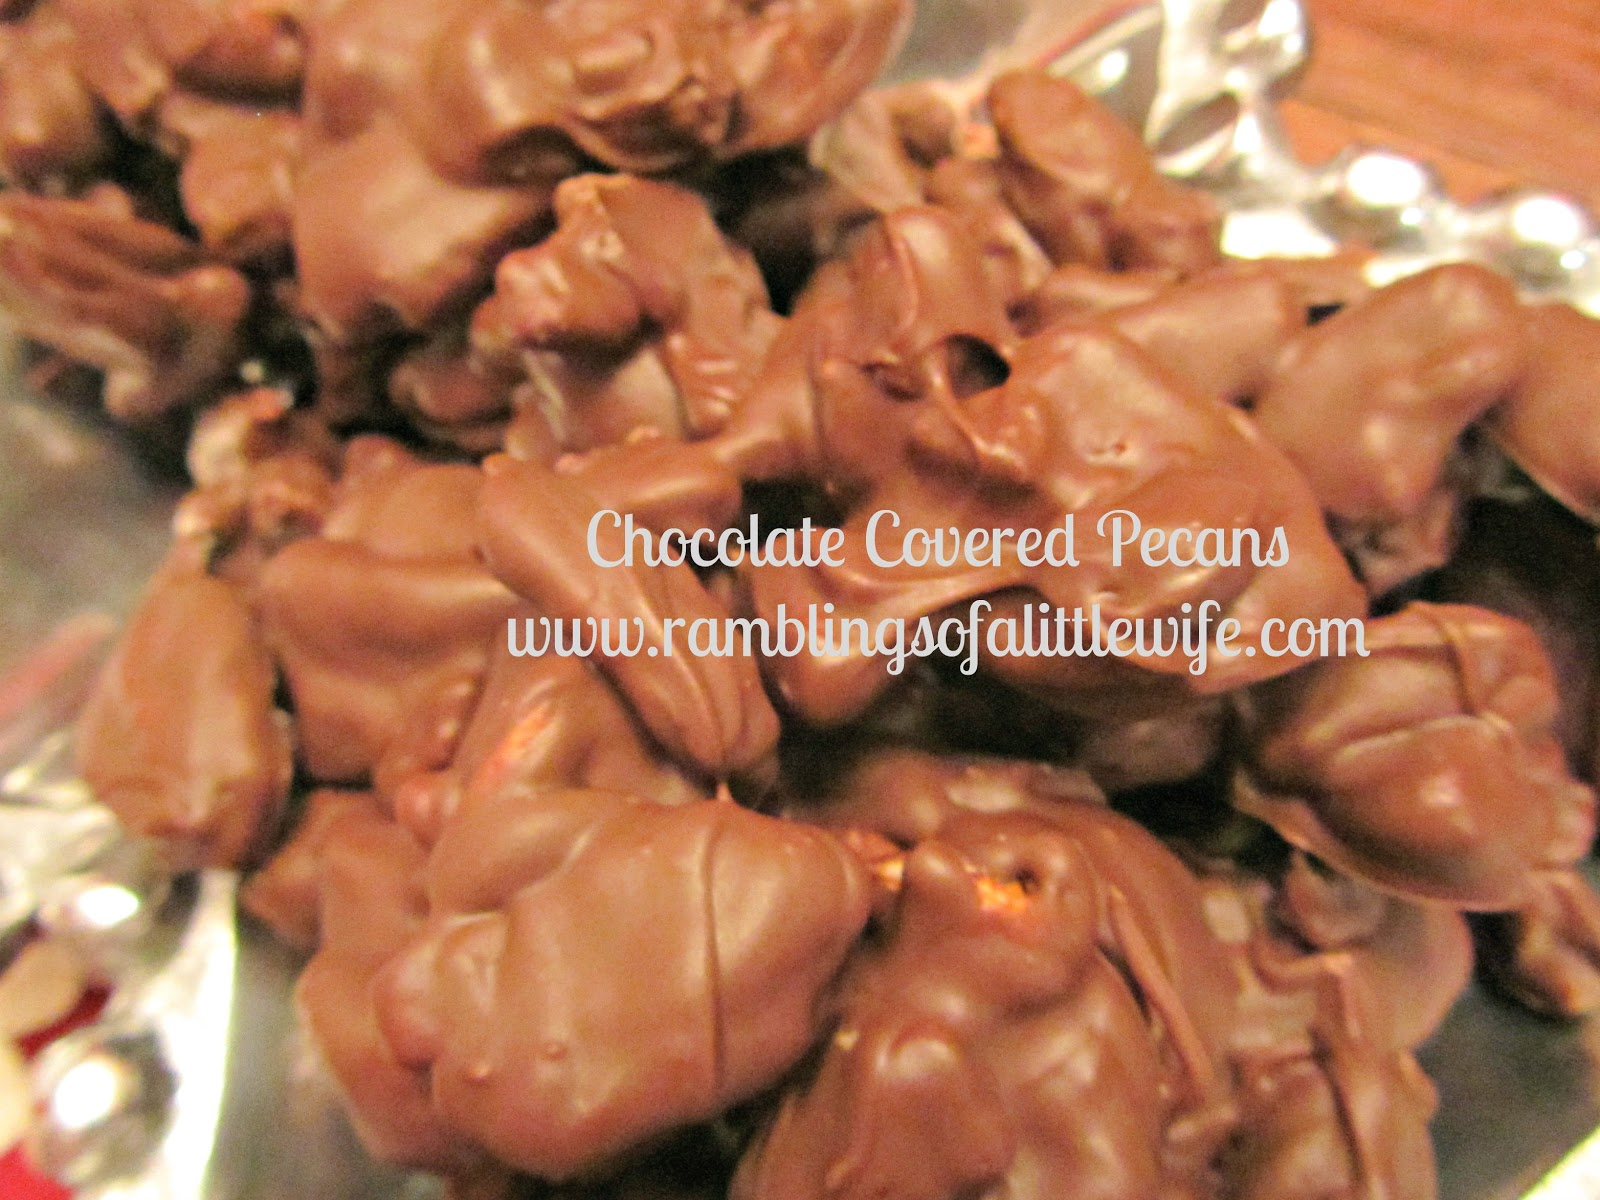 Recipes: Chocolate Covered Pecans